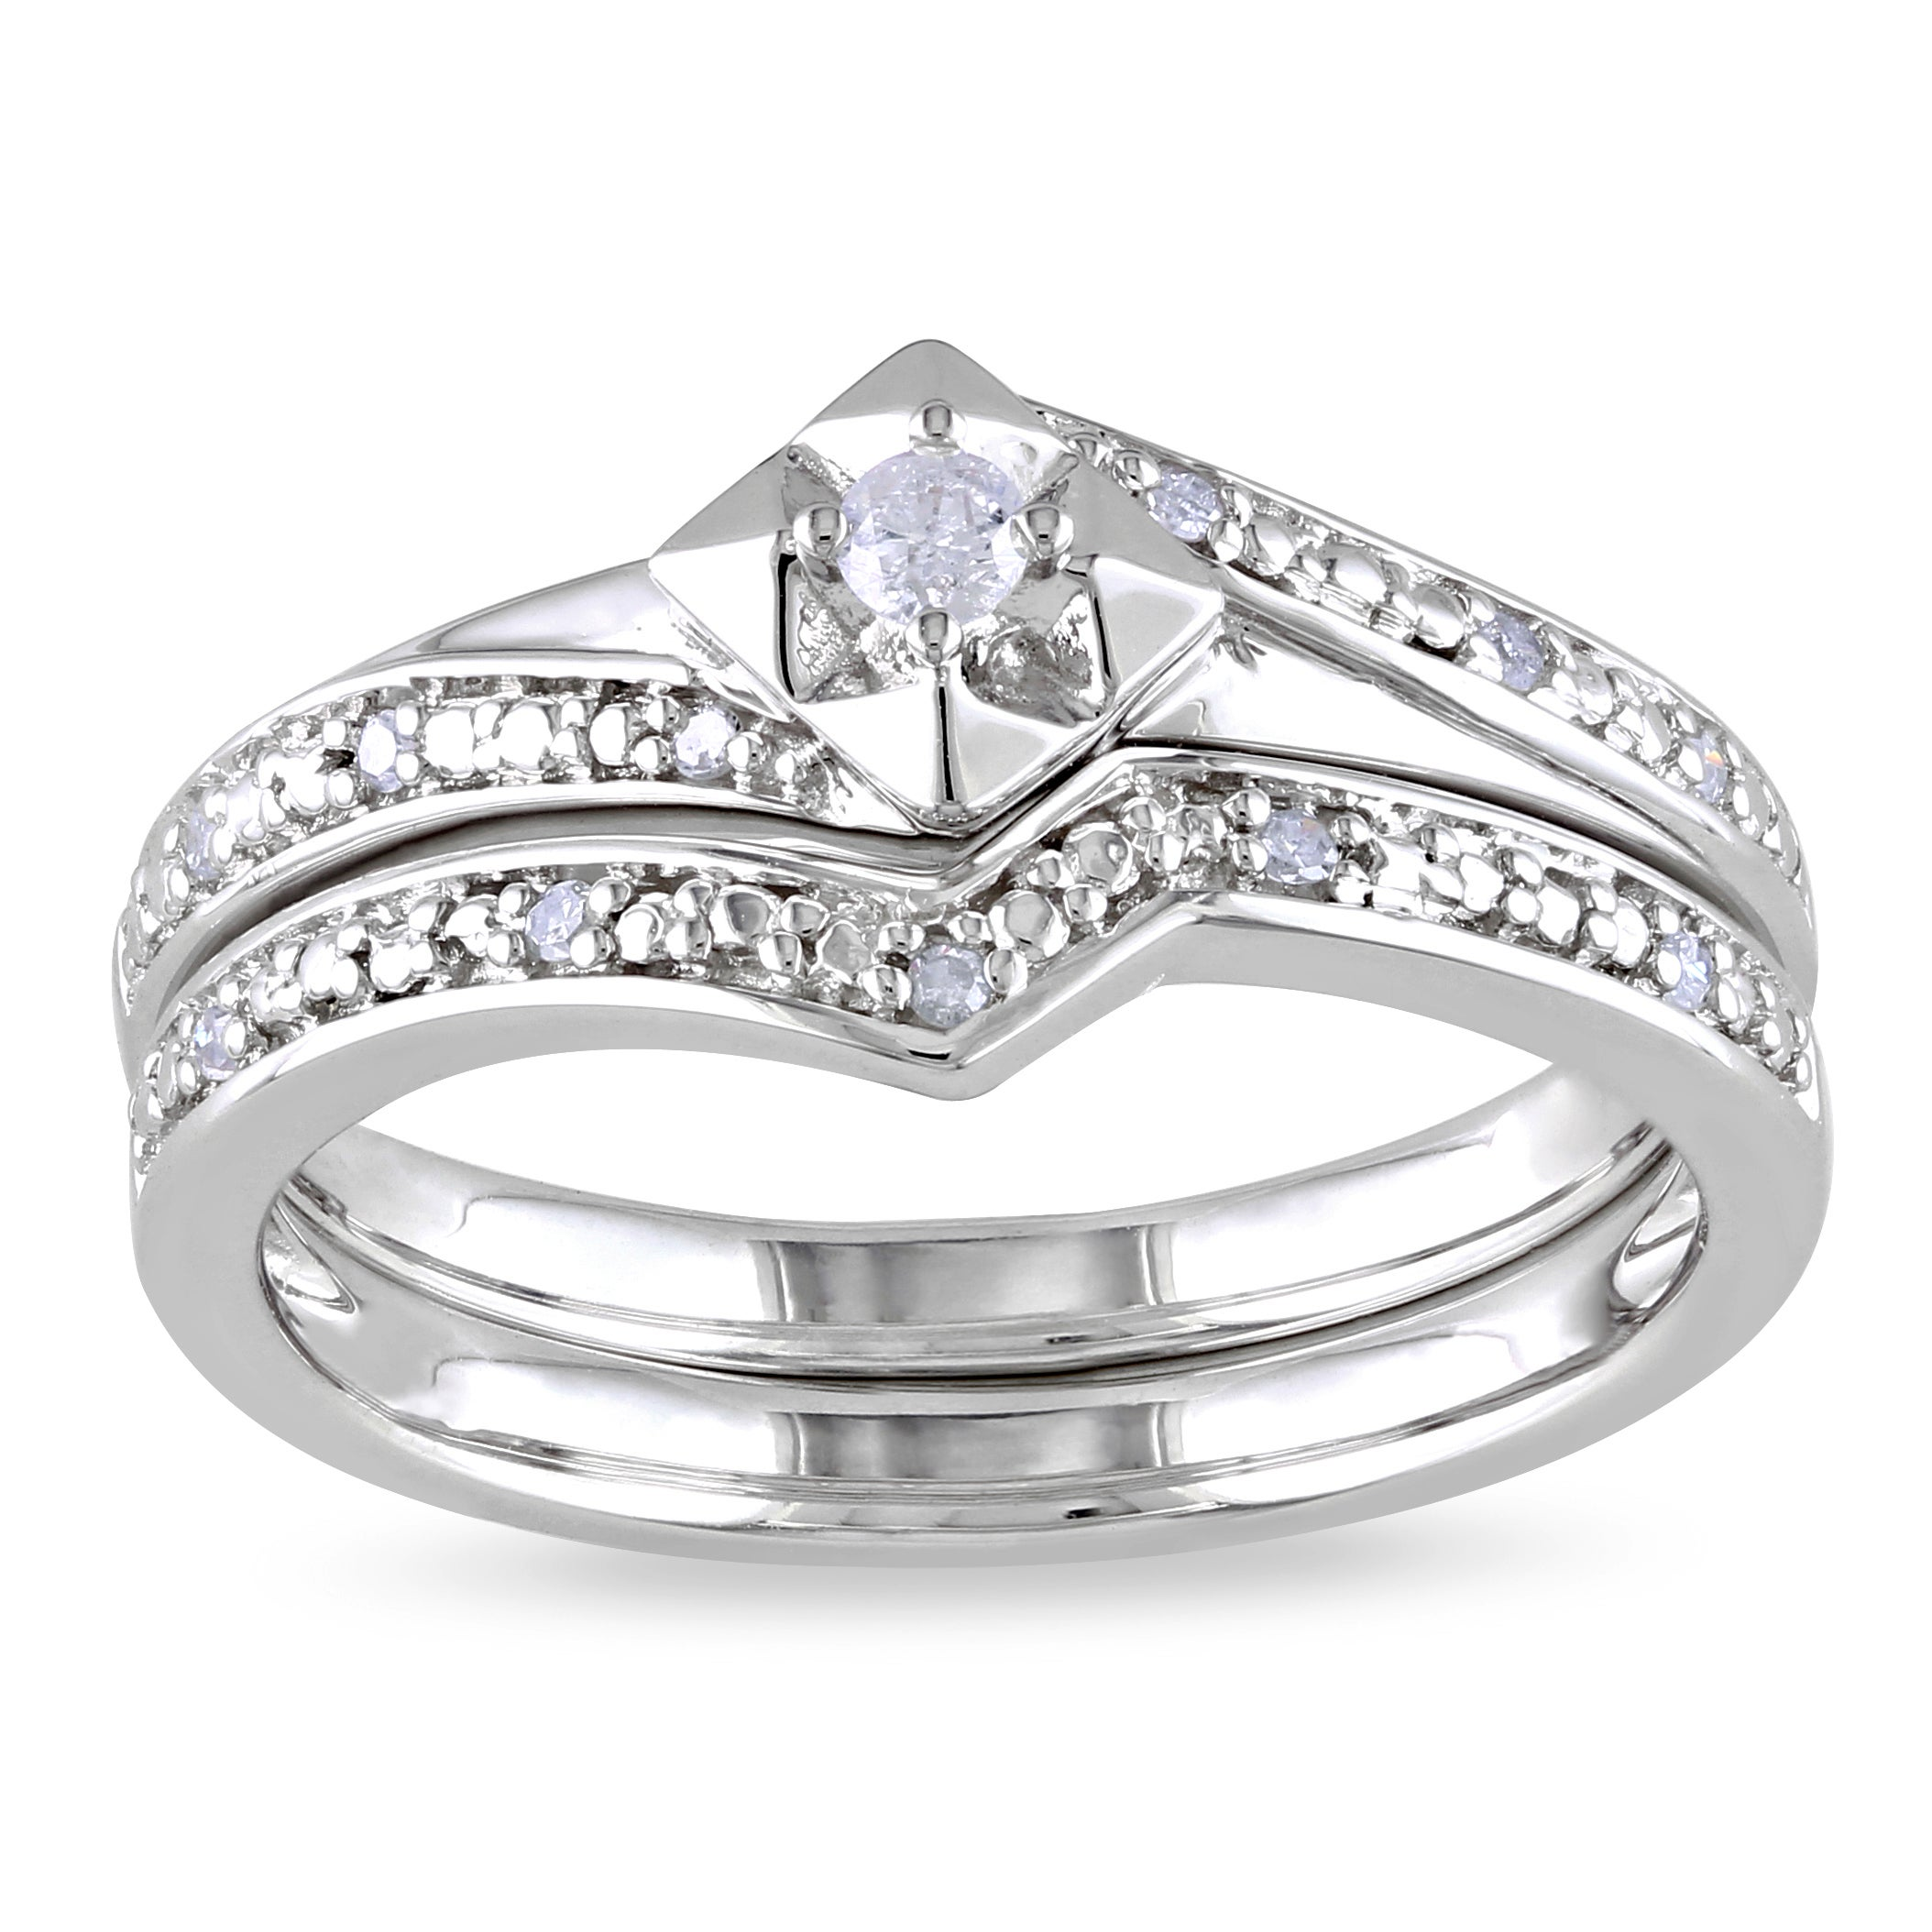 Miadora Sterling Silver 1/10ct TDW Diamond Ring Set (H-I, I2-I3)